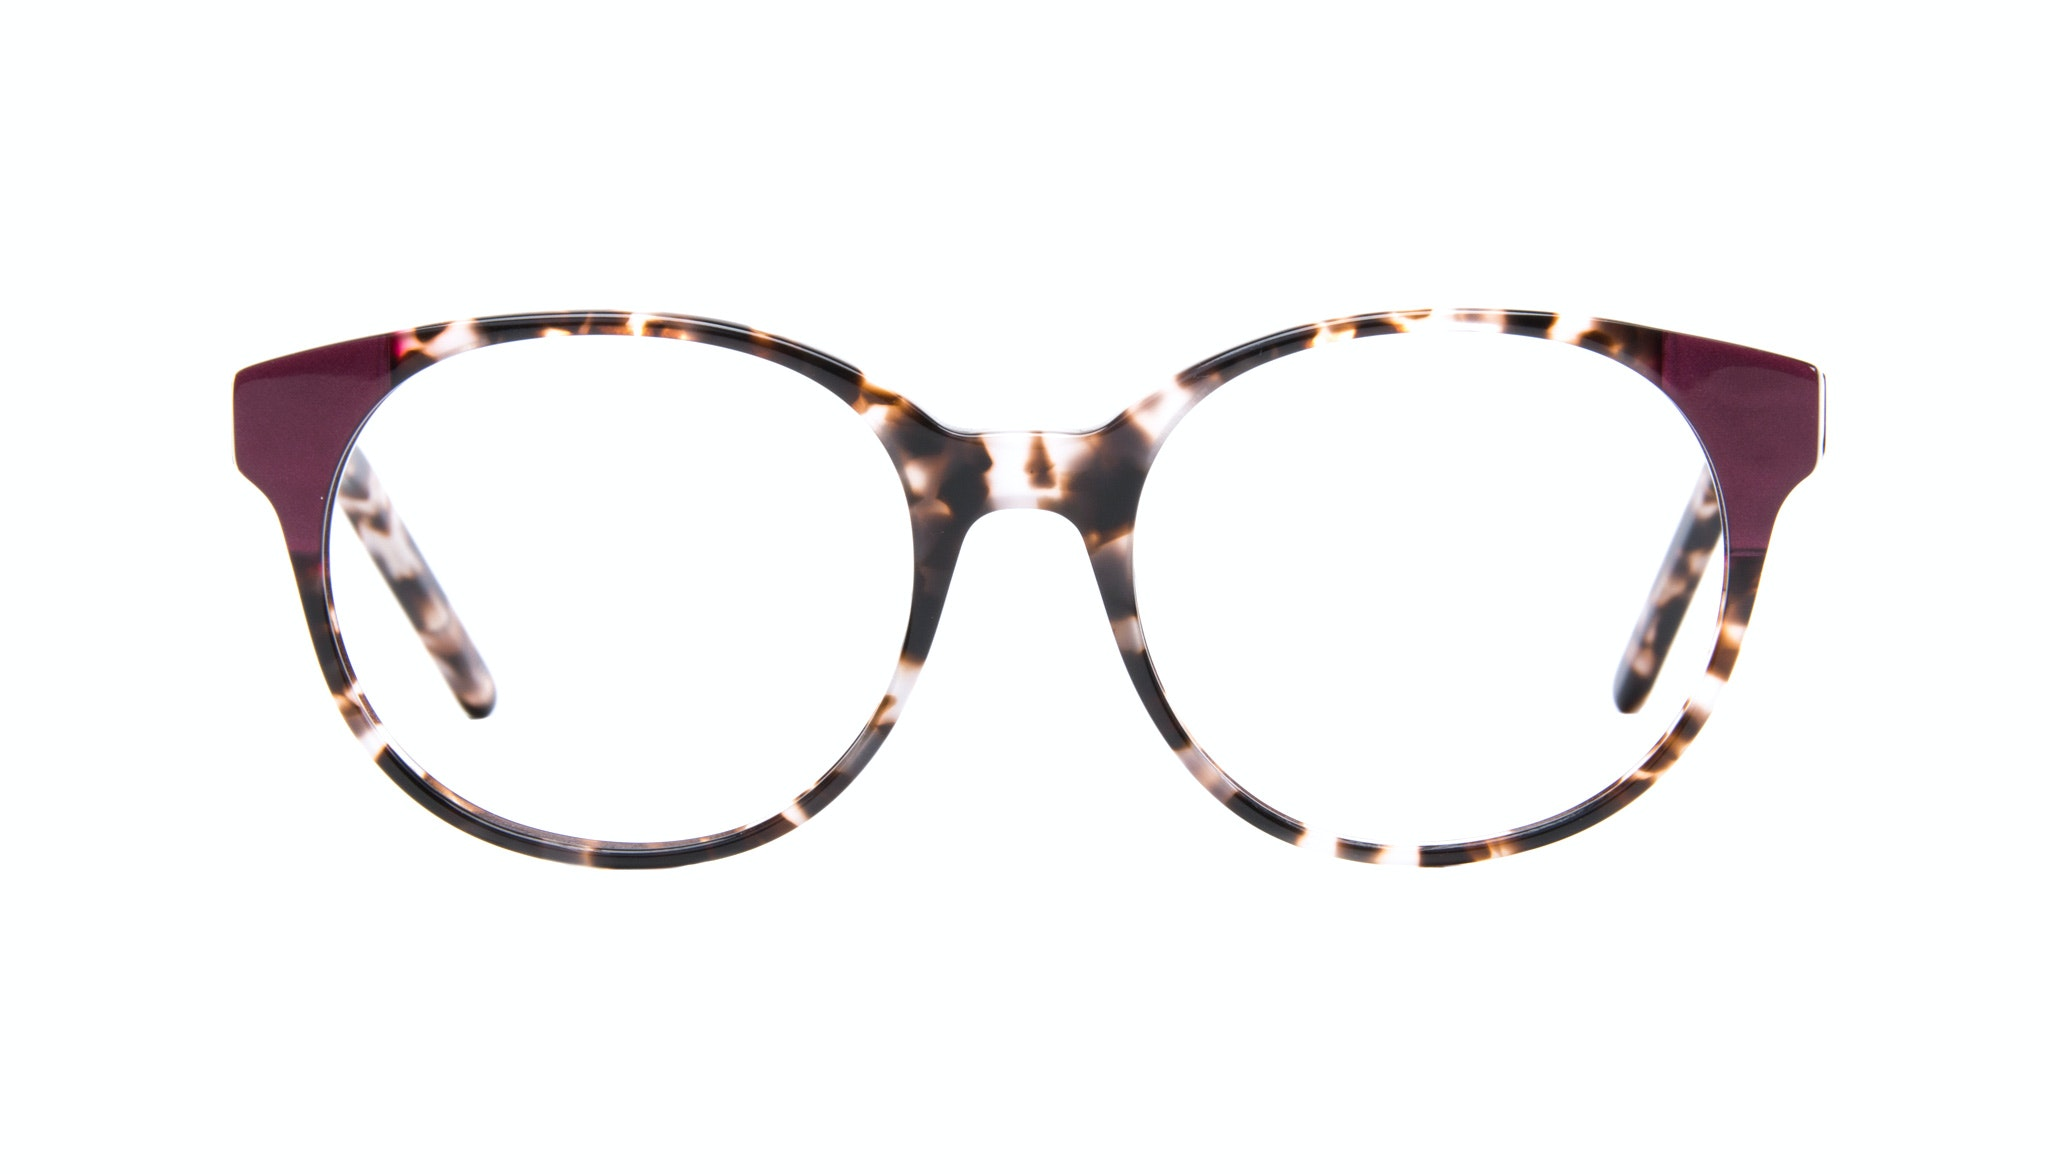 Affordable Fashion Glasses Round Eyeglasses Women Bis Mocha Plum